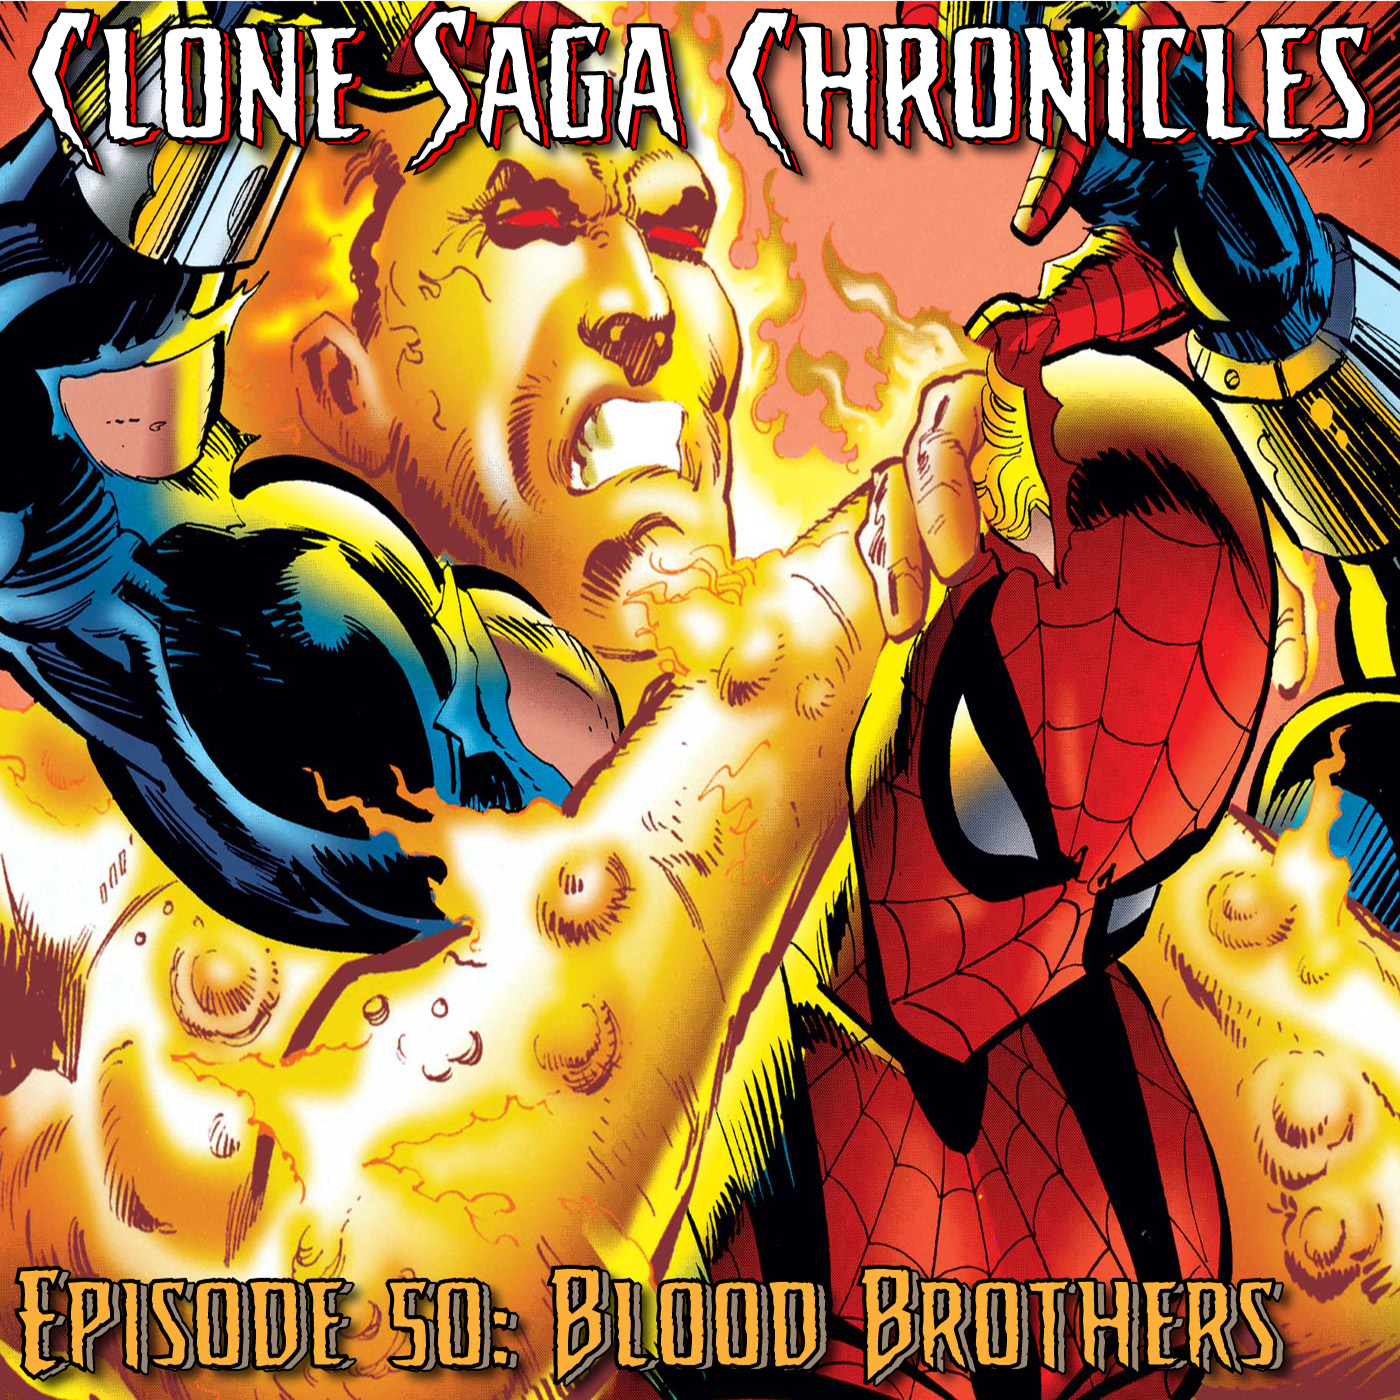 CSC Episode 50: Blood Brothers (May/June 1995)